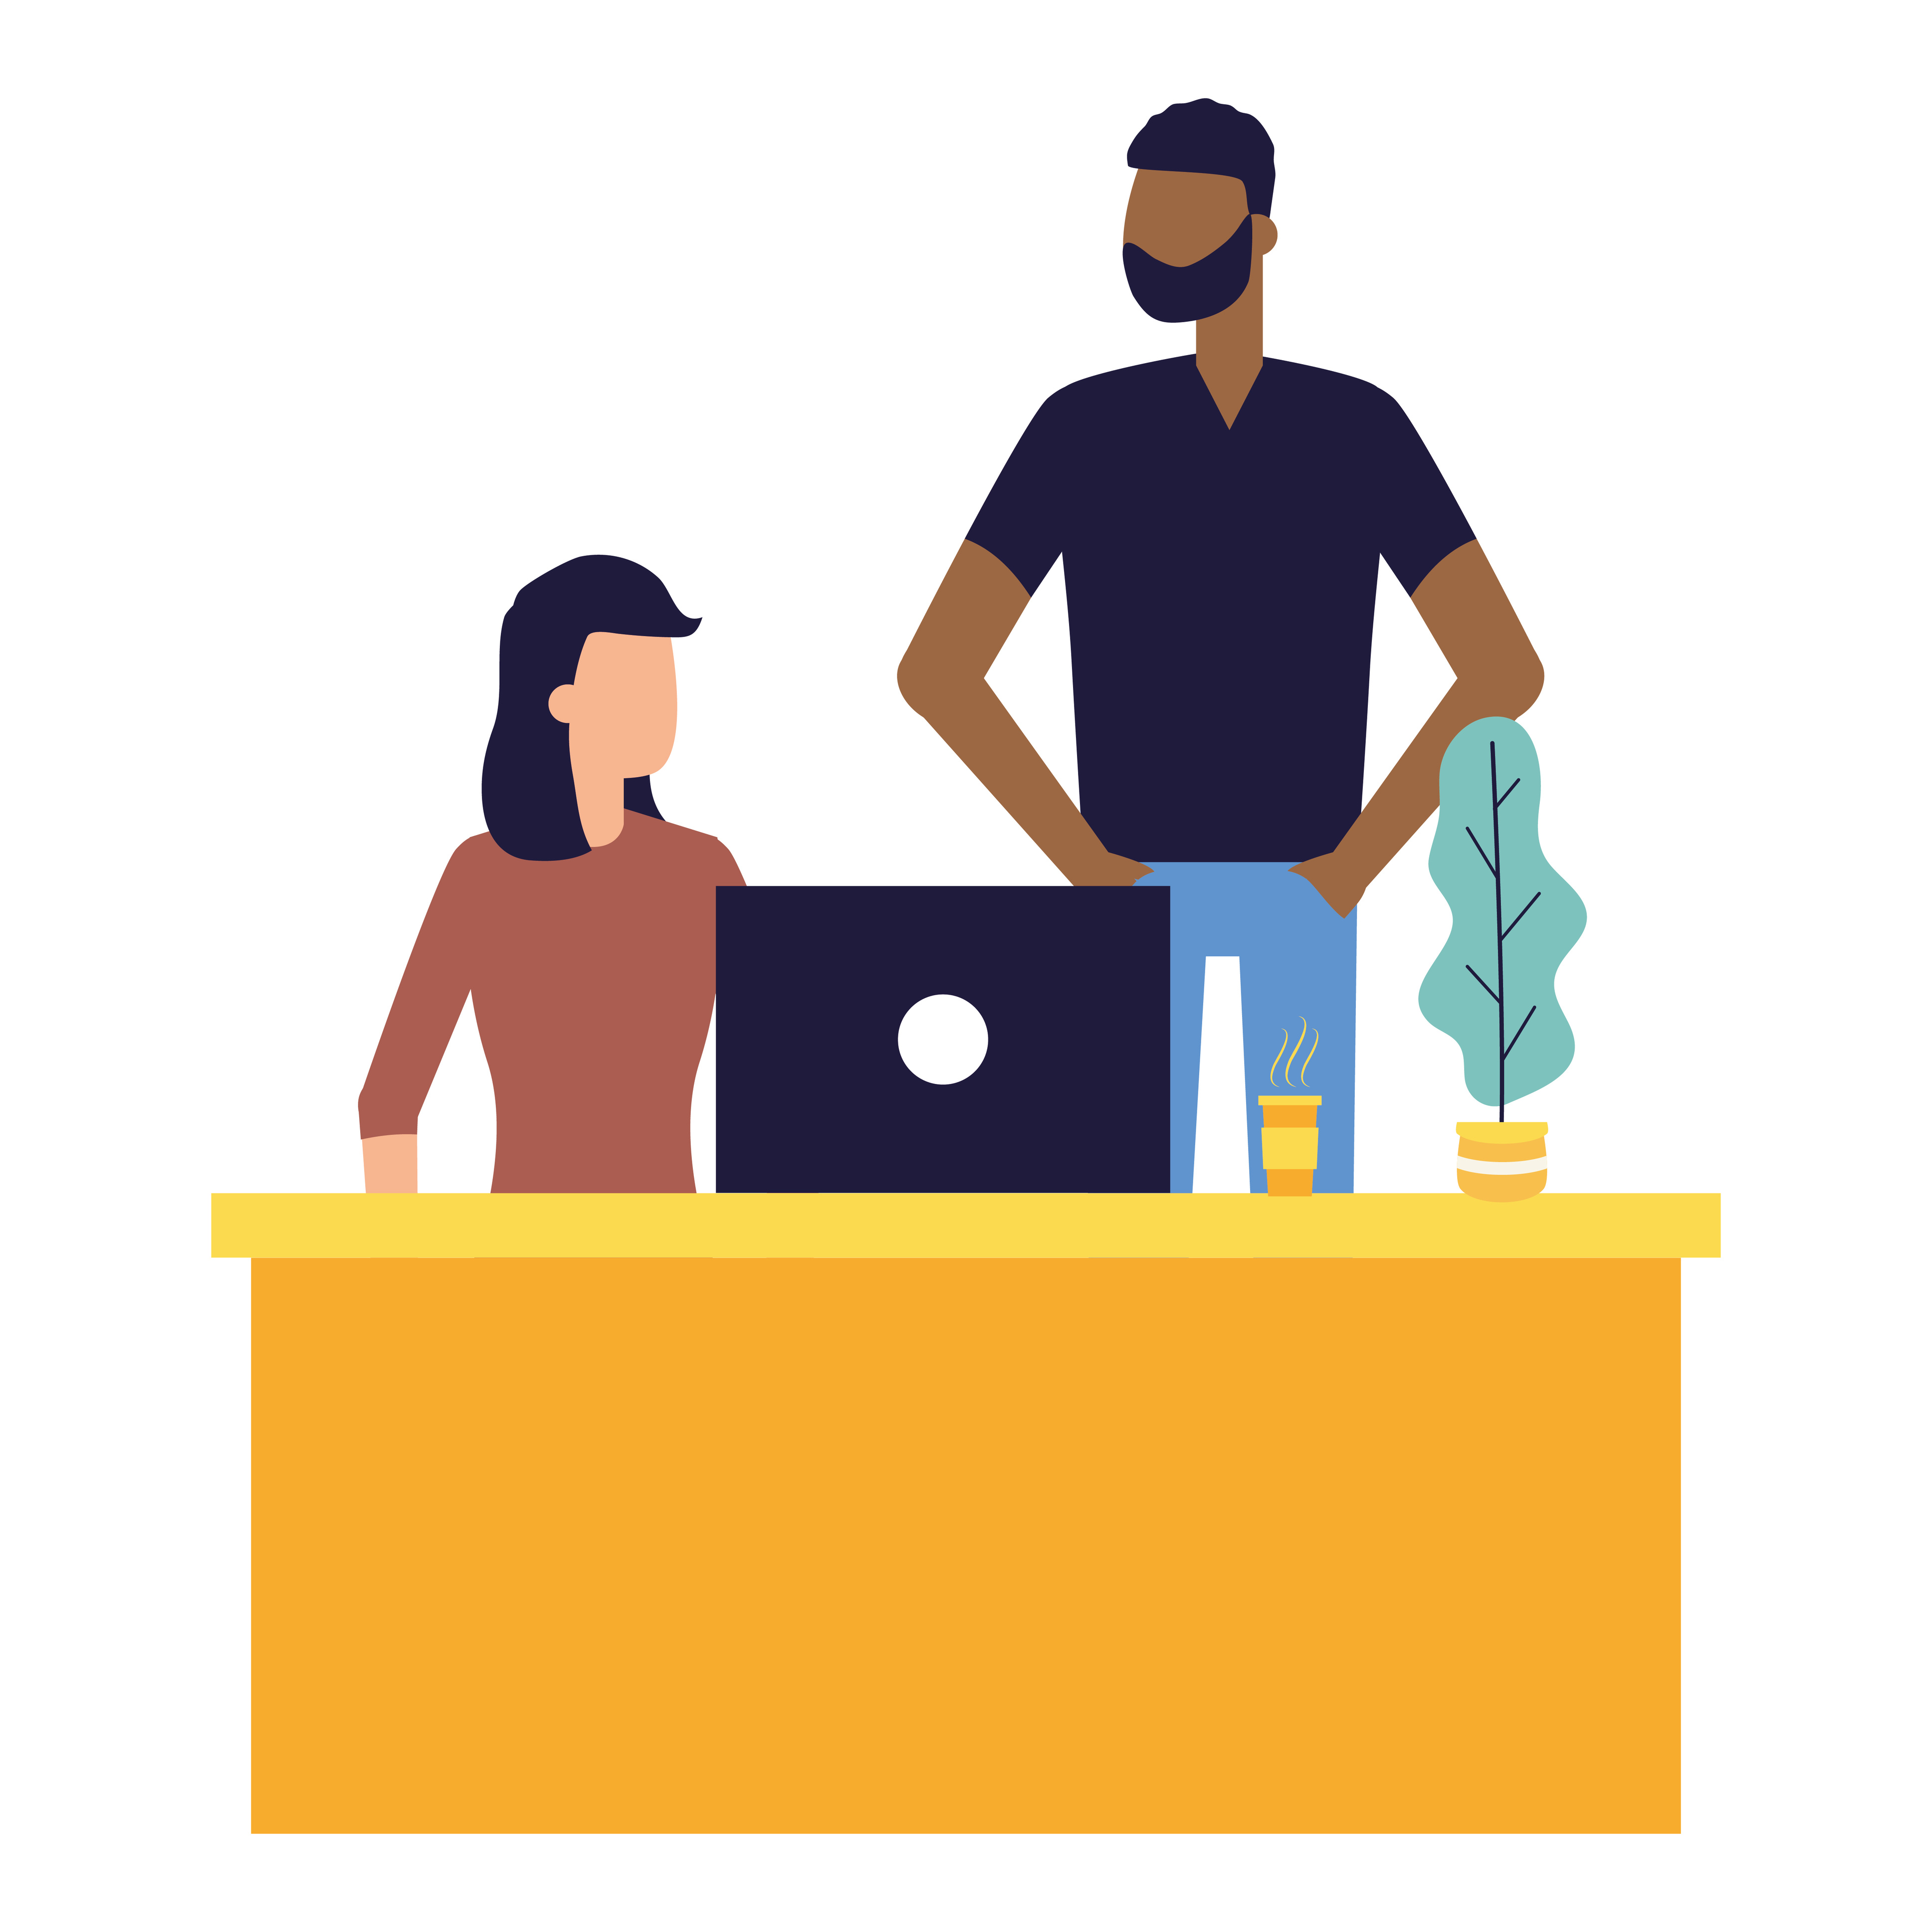 Illustration of someone sitting at a desk with a laptop and another person standing next to them.